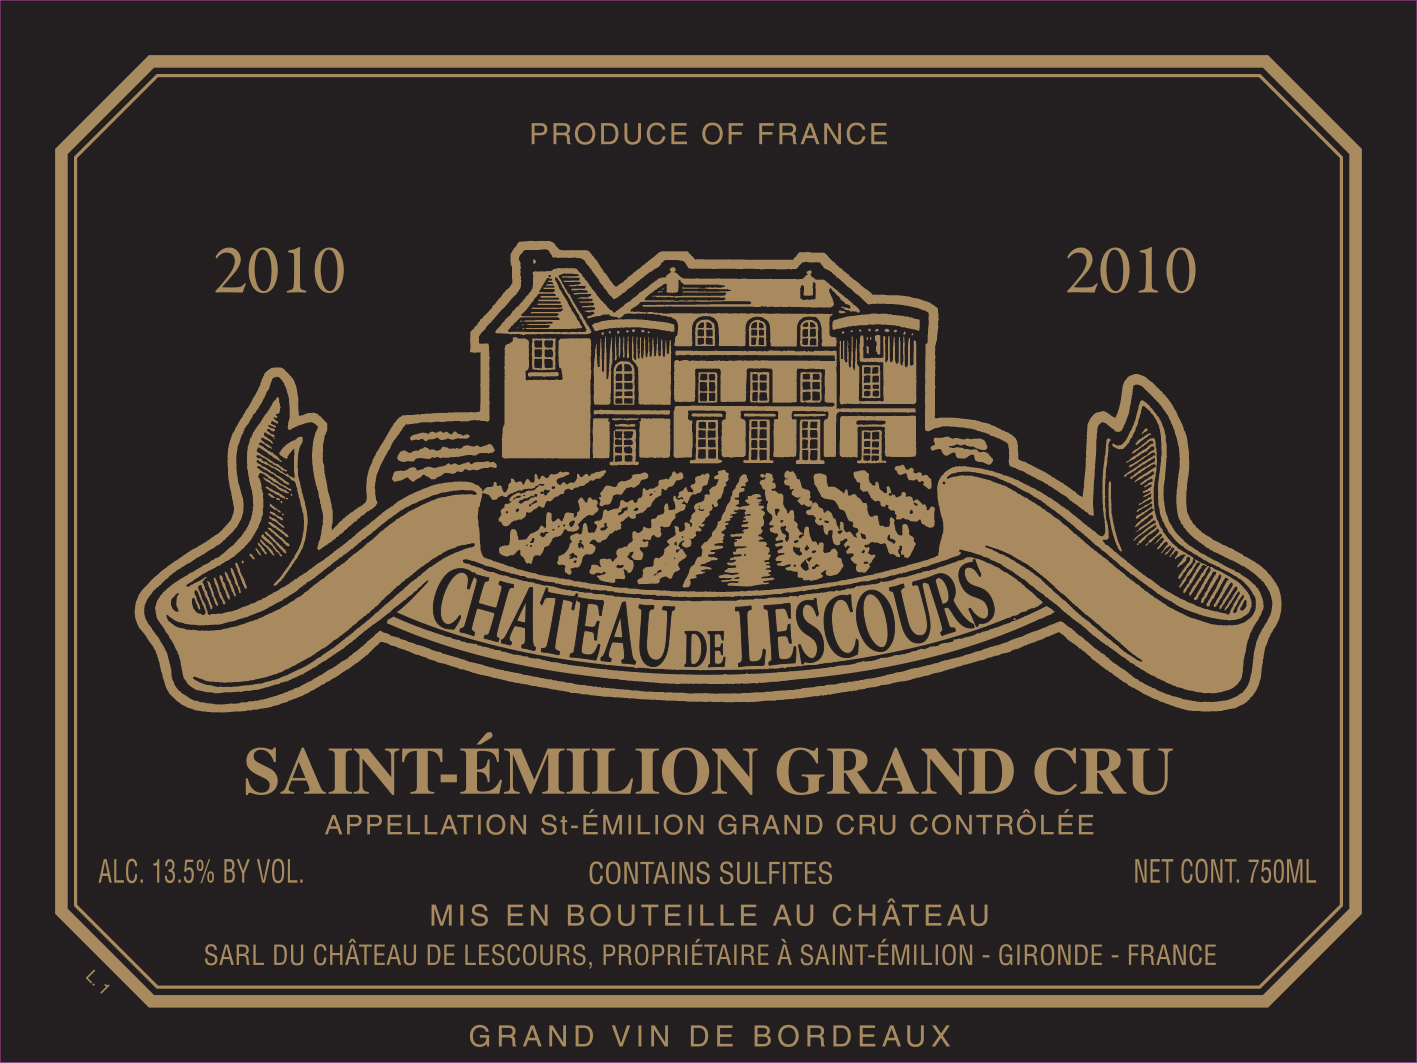 st emilion grand cru david milligan selections. Black Bedroom Furniture Sets. Home Design Ideas